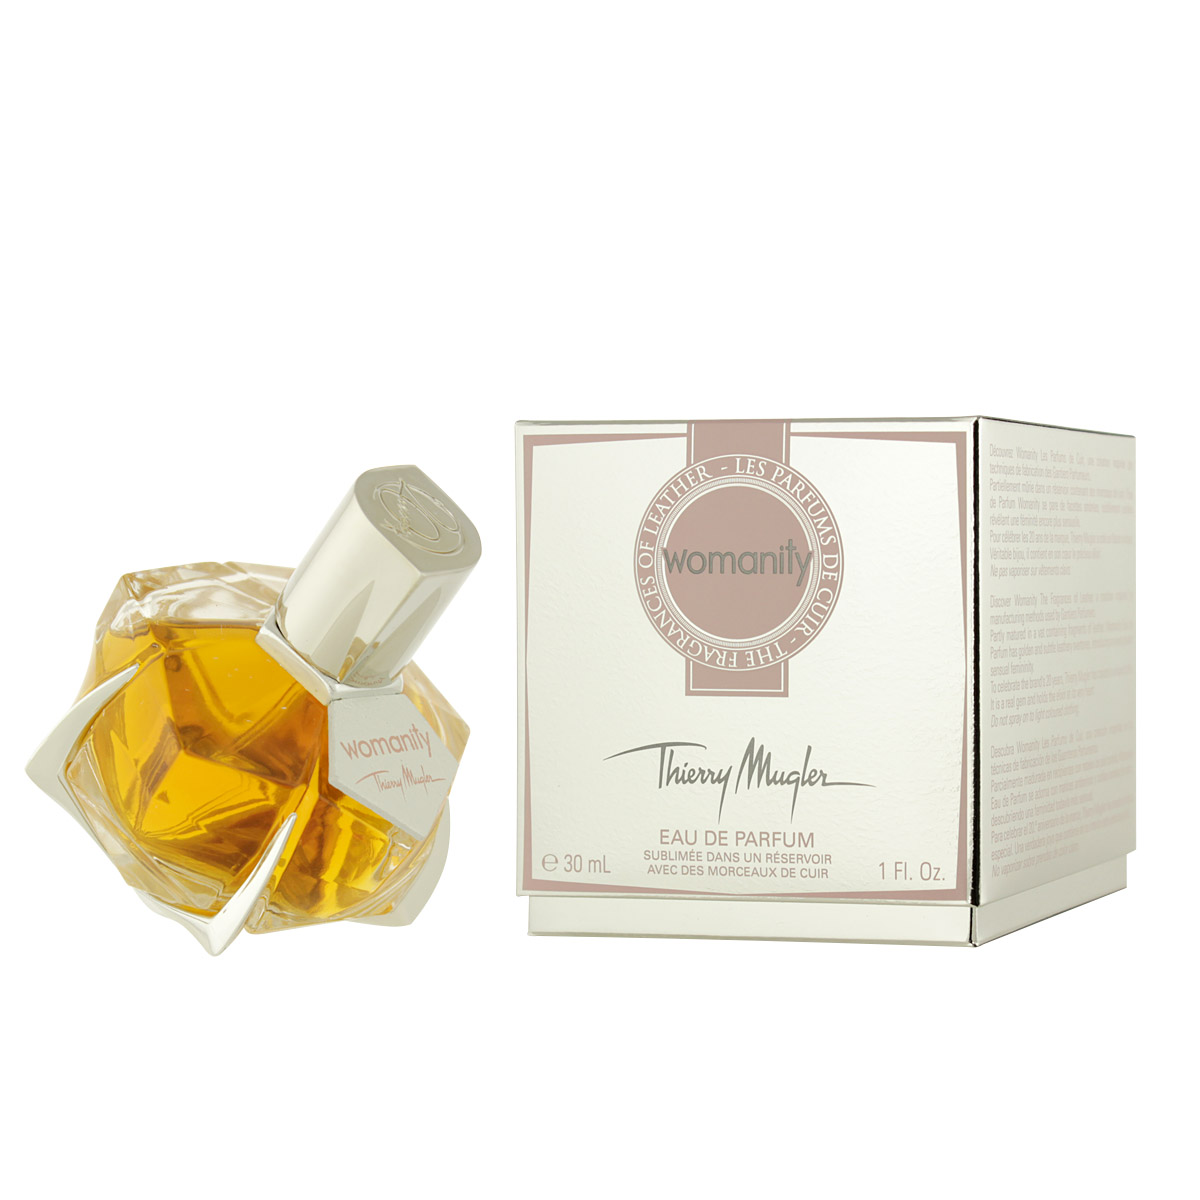 Thierry Mugler Womanity Les Parfums de Cuir EDP 30 ml W